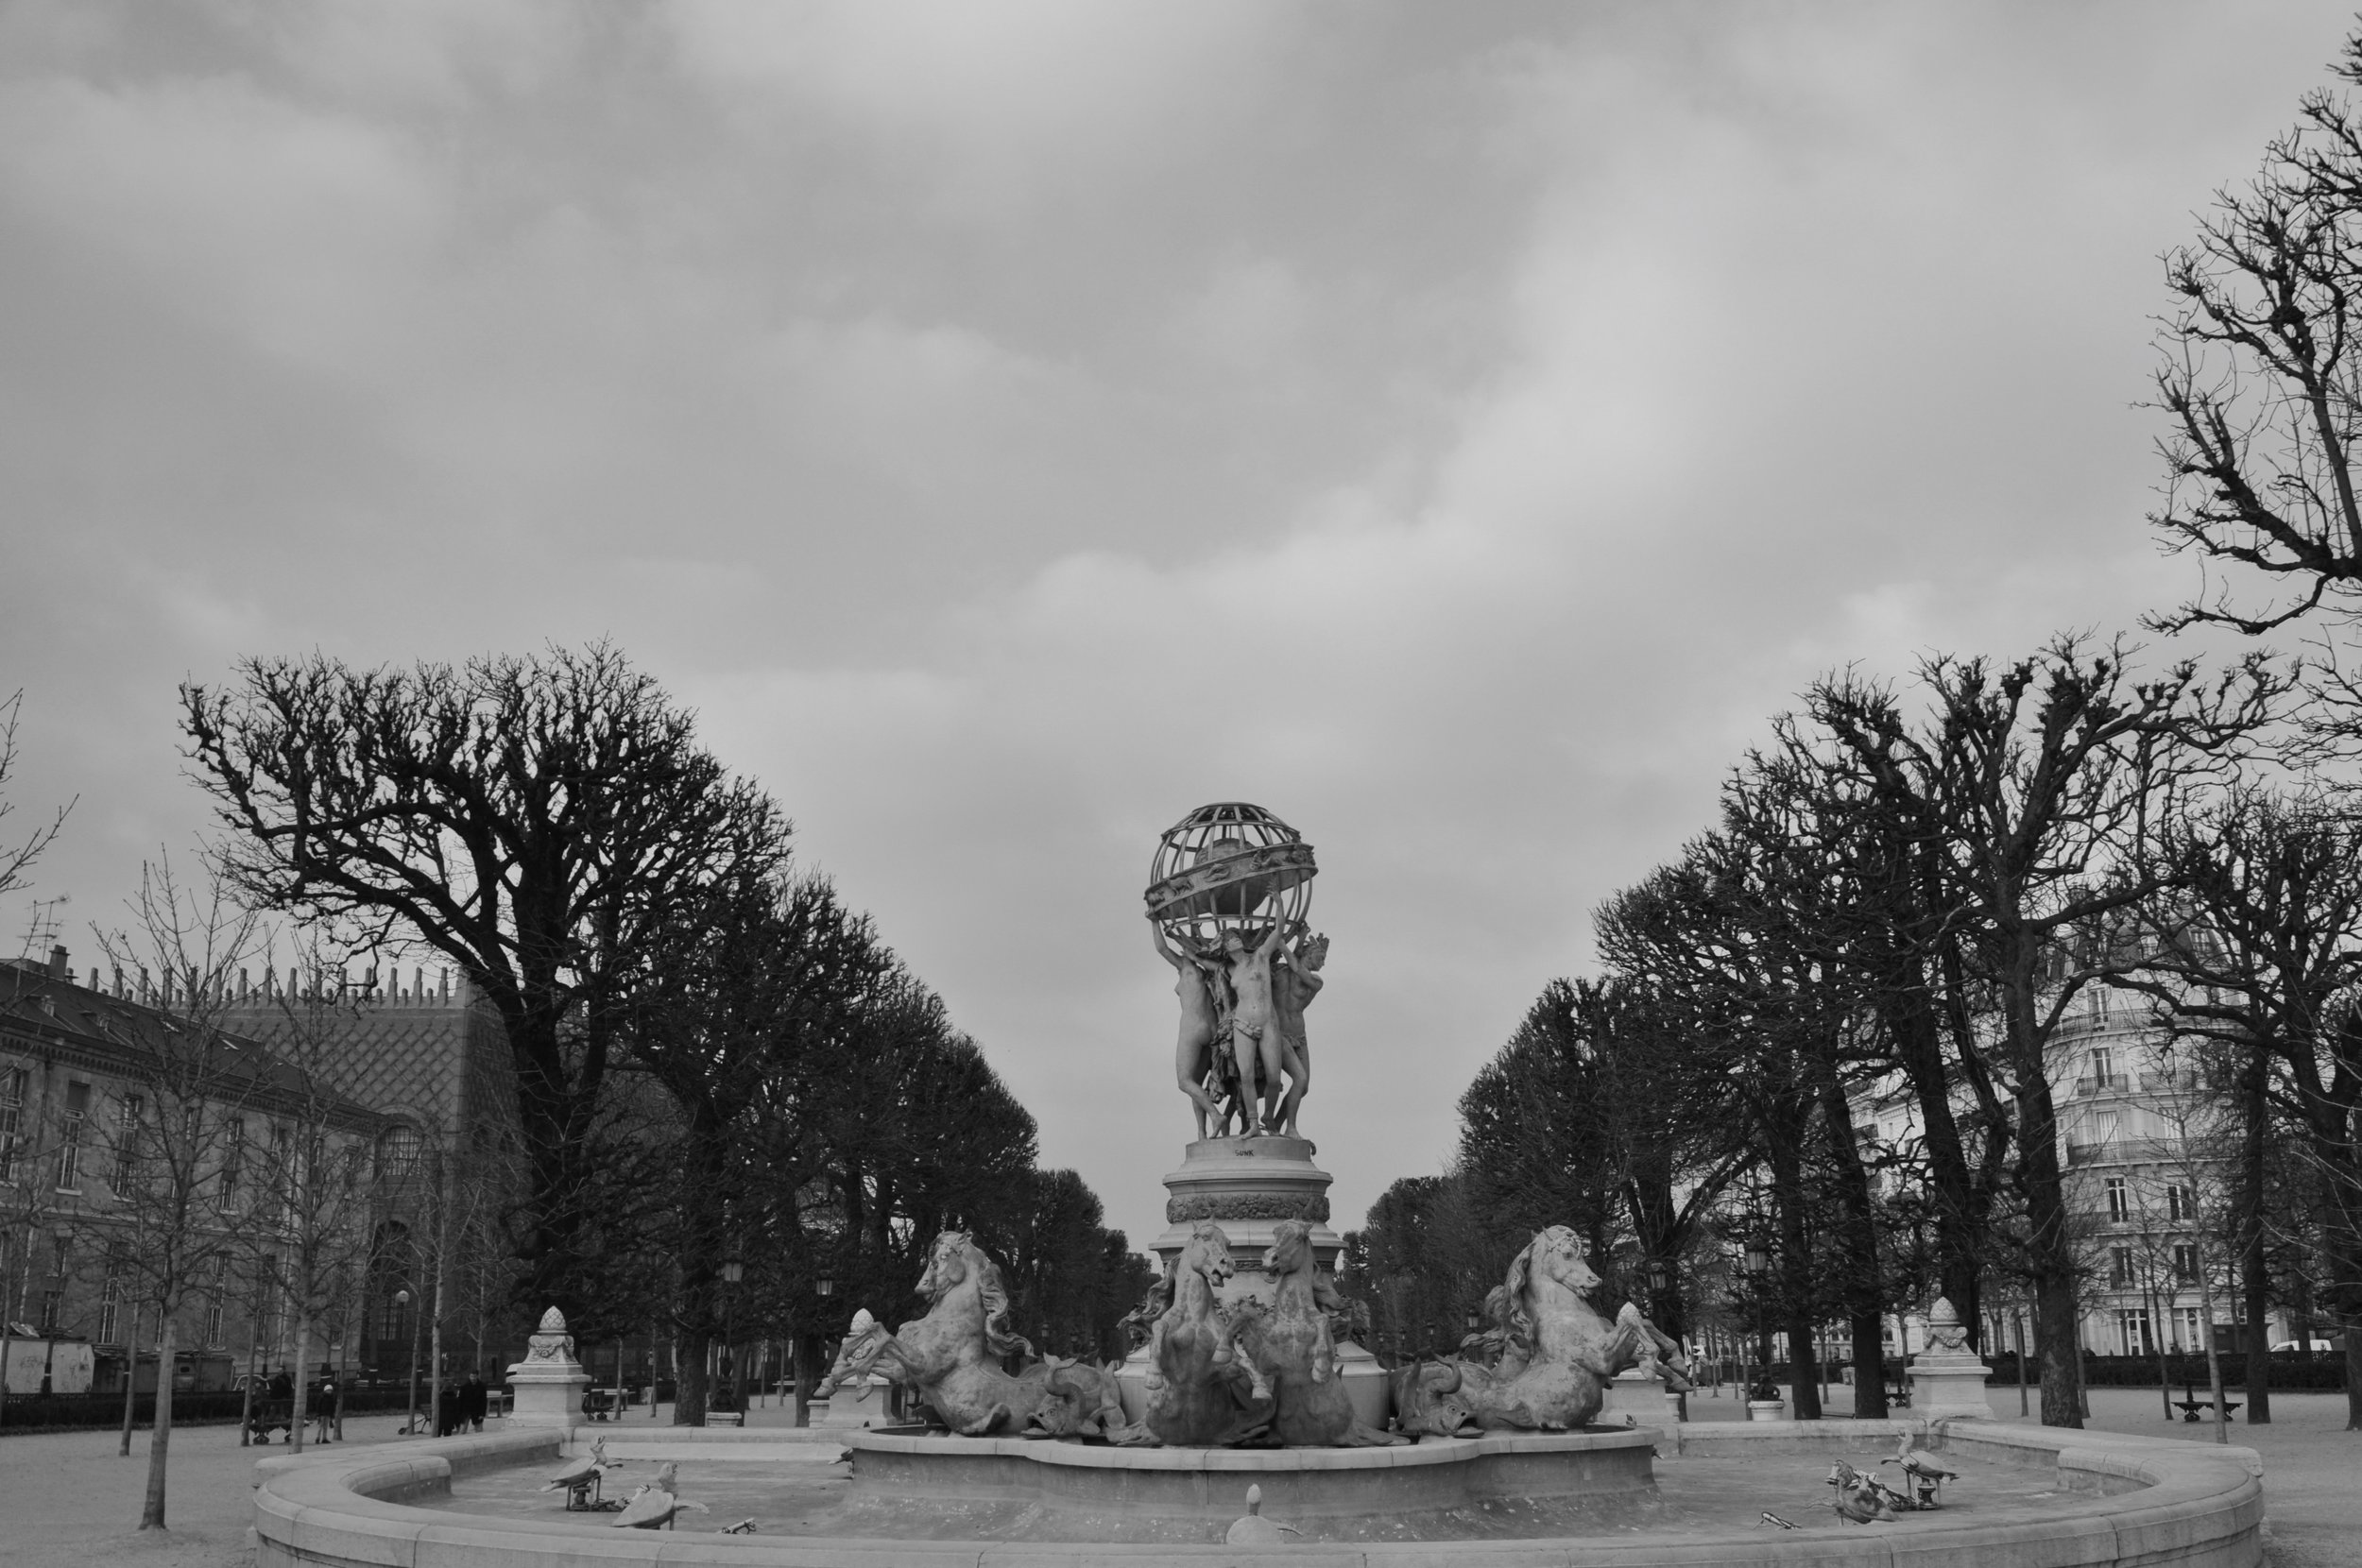 This is a photo of Fontaine de l'Observatoire (similar in name to Jardin de l'Observatoire), which has statues and green benches as well.